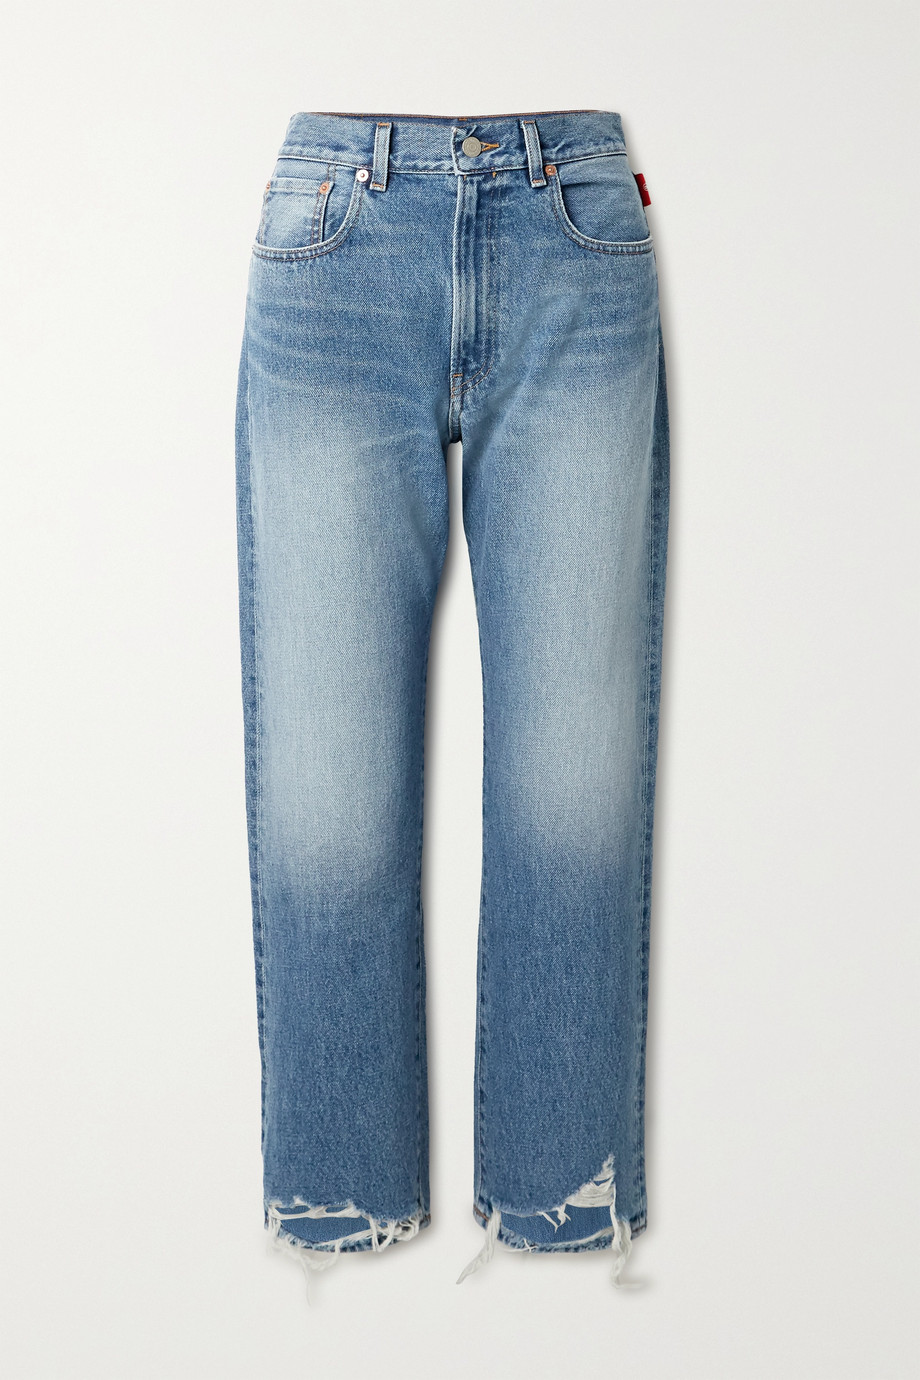 Denimist Boyfriend-Jeans in Distressed-Optik